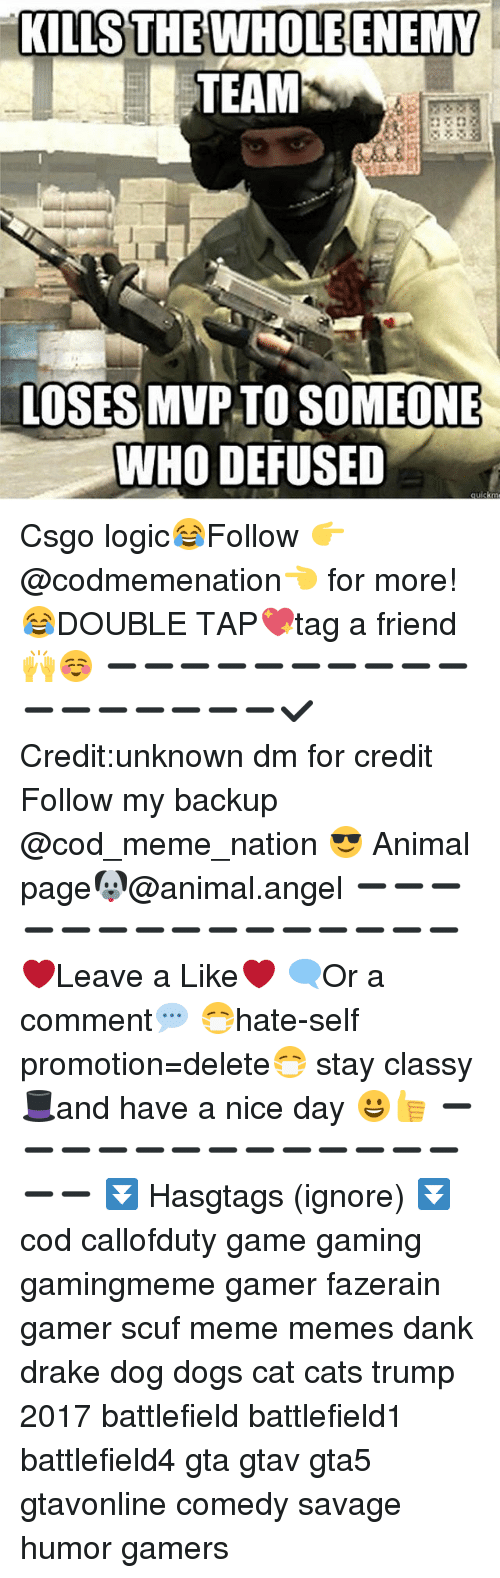 Cats, Dank, and Dogs: KILLS THE WHOLE ENEMY  TEAM  LOSES MVP TO SOMEONE  WHO DE FUSED  ckm Csgo logic😂Follow 👉@codmemenation👈 for more!😂DOUBLE TAP💖tag a friend 🙌☺ ➖➖➖➖➖➖➖➖➖➖➖➖➖➖➖➖➖✔Credit:unknown dm for credit Follow my backup @cod_meme_nation 😎 Animal page🐶@animal.angel ➖➖➖➖➖➖➖➖➖➖➖➖➖➖➖ ❤Leave a Like❤ 🗨Or a comment💬 😷hate-self promotion=delete😷 stay classy 🎩and have a nice day 😀👍 ➖➖➖➖➖➖➖➖➖➖➖➖➖➖➖ ⏬ Hasgtags (ignore) ⏬ cod callofduty game gaming gamingmeme gamer fazerain gamer scuf meme memes dank drake dog dogs cat cats trump 2017 battlefield battlefield1 battlefield4 gta gtav gta5 gtavonline comedy savage humor gamers